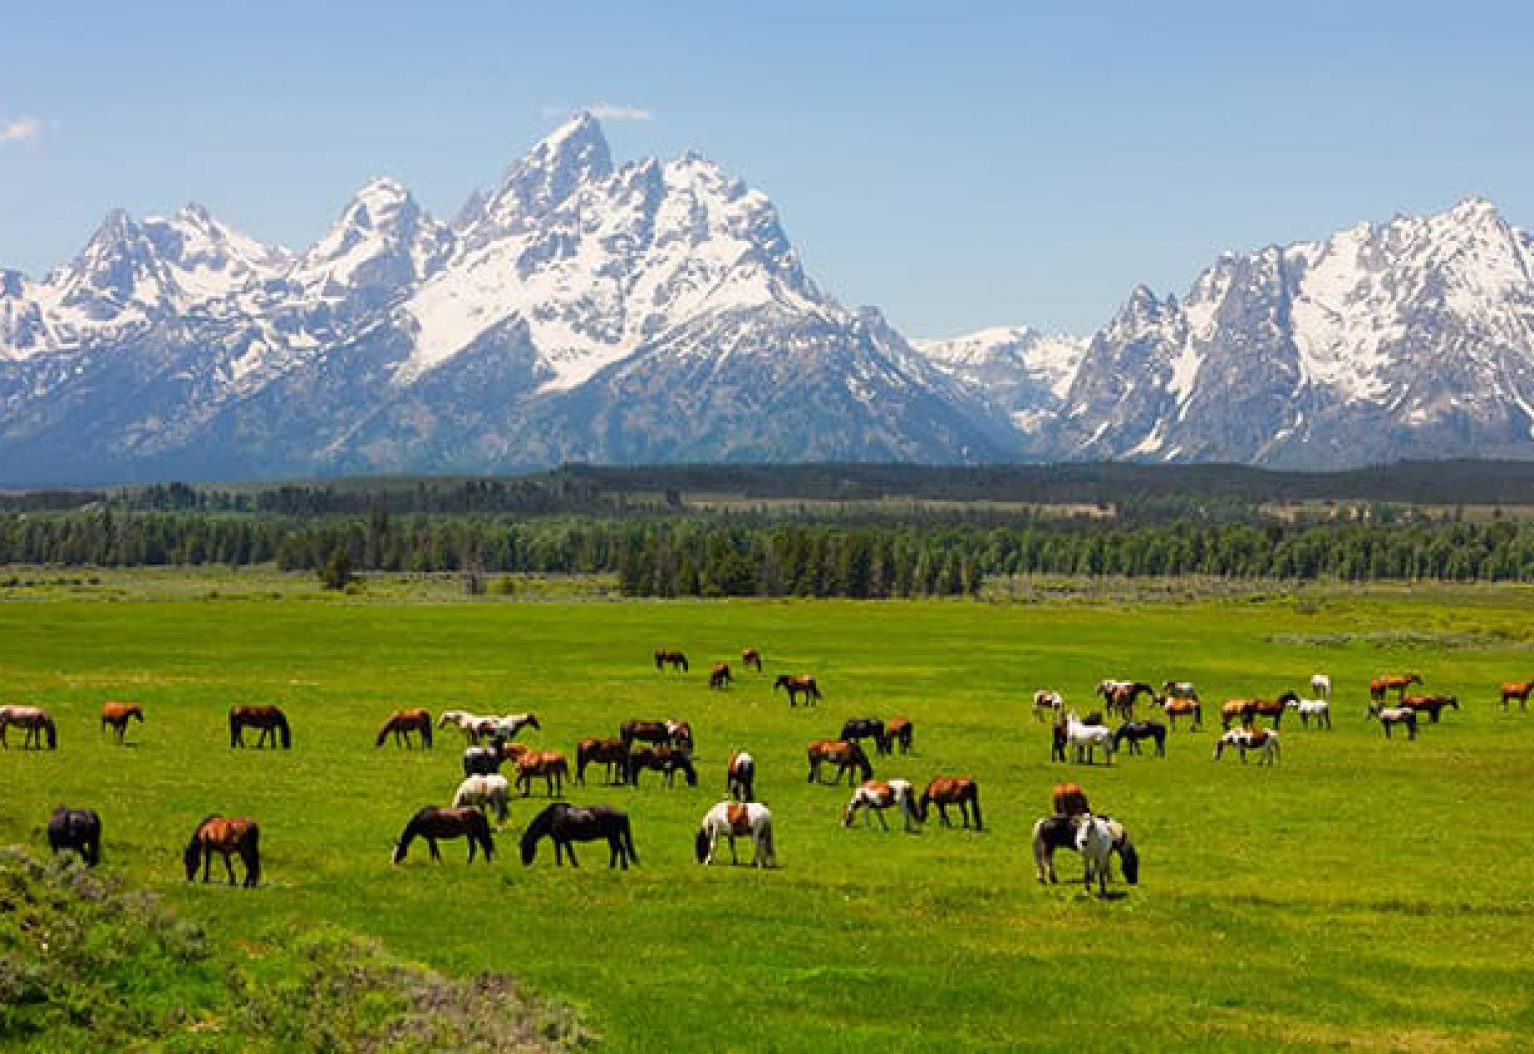 Grazing horses with the Tetons in the background